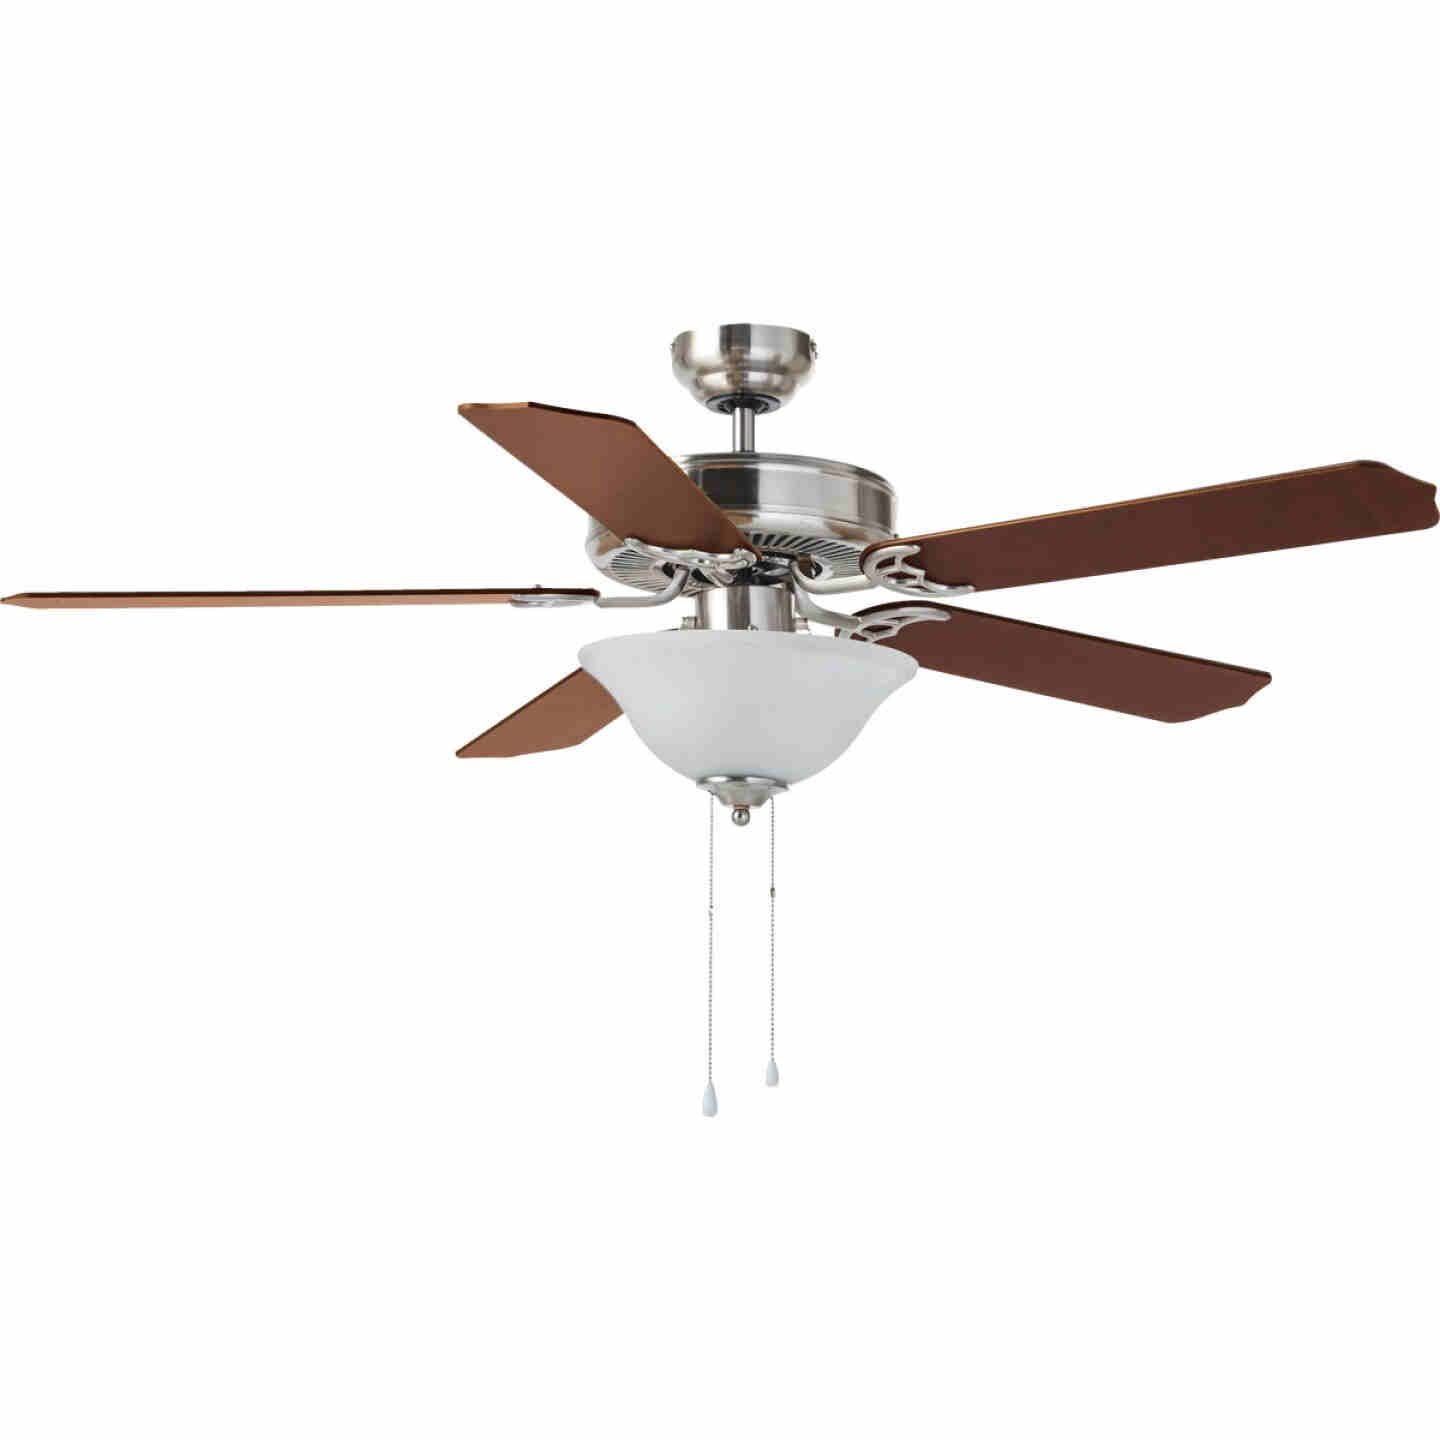 Home Impressions Baylor 52 In. Brushed Nickel Ceiling Fan with Light Kit Image 2